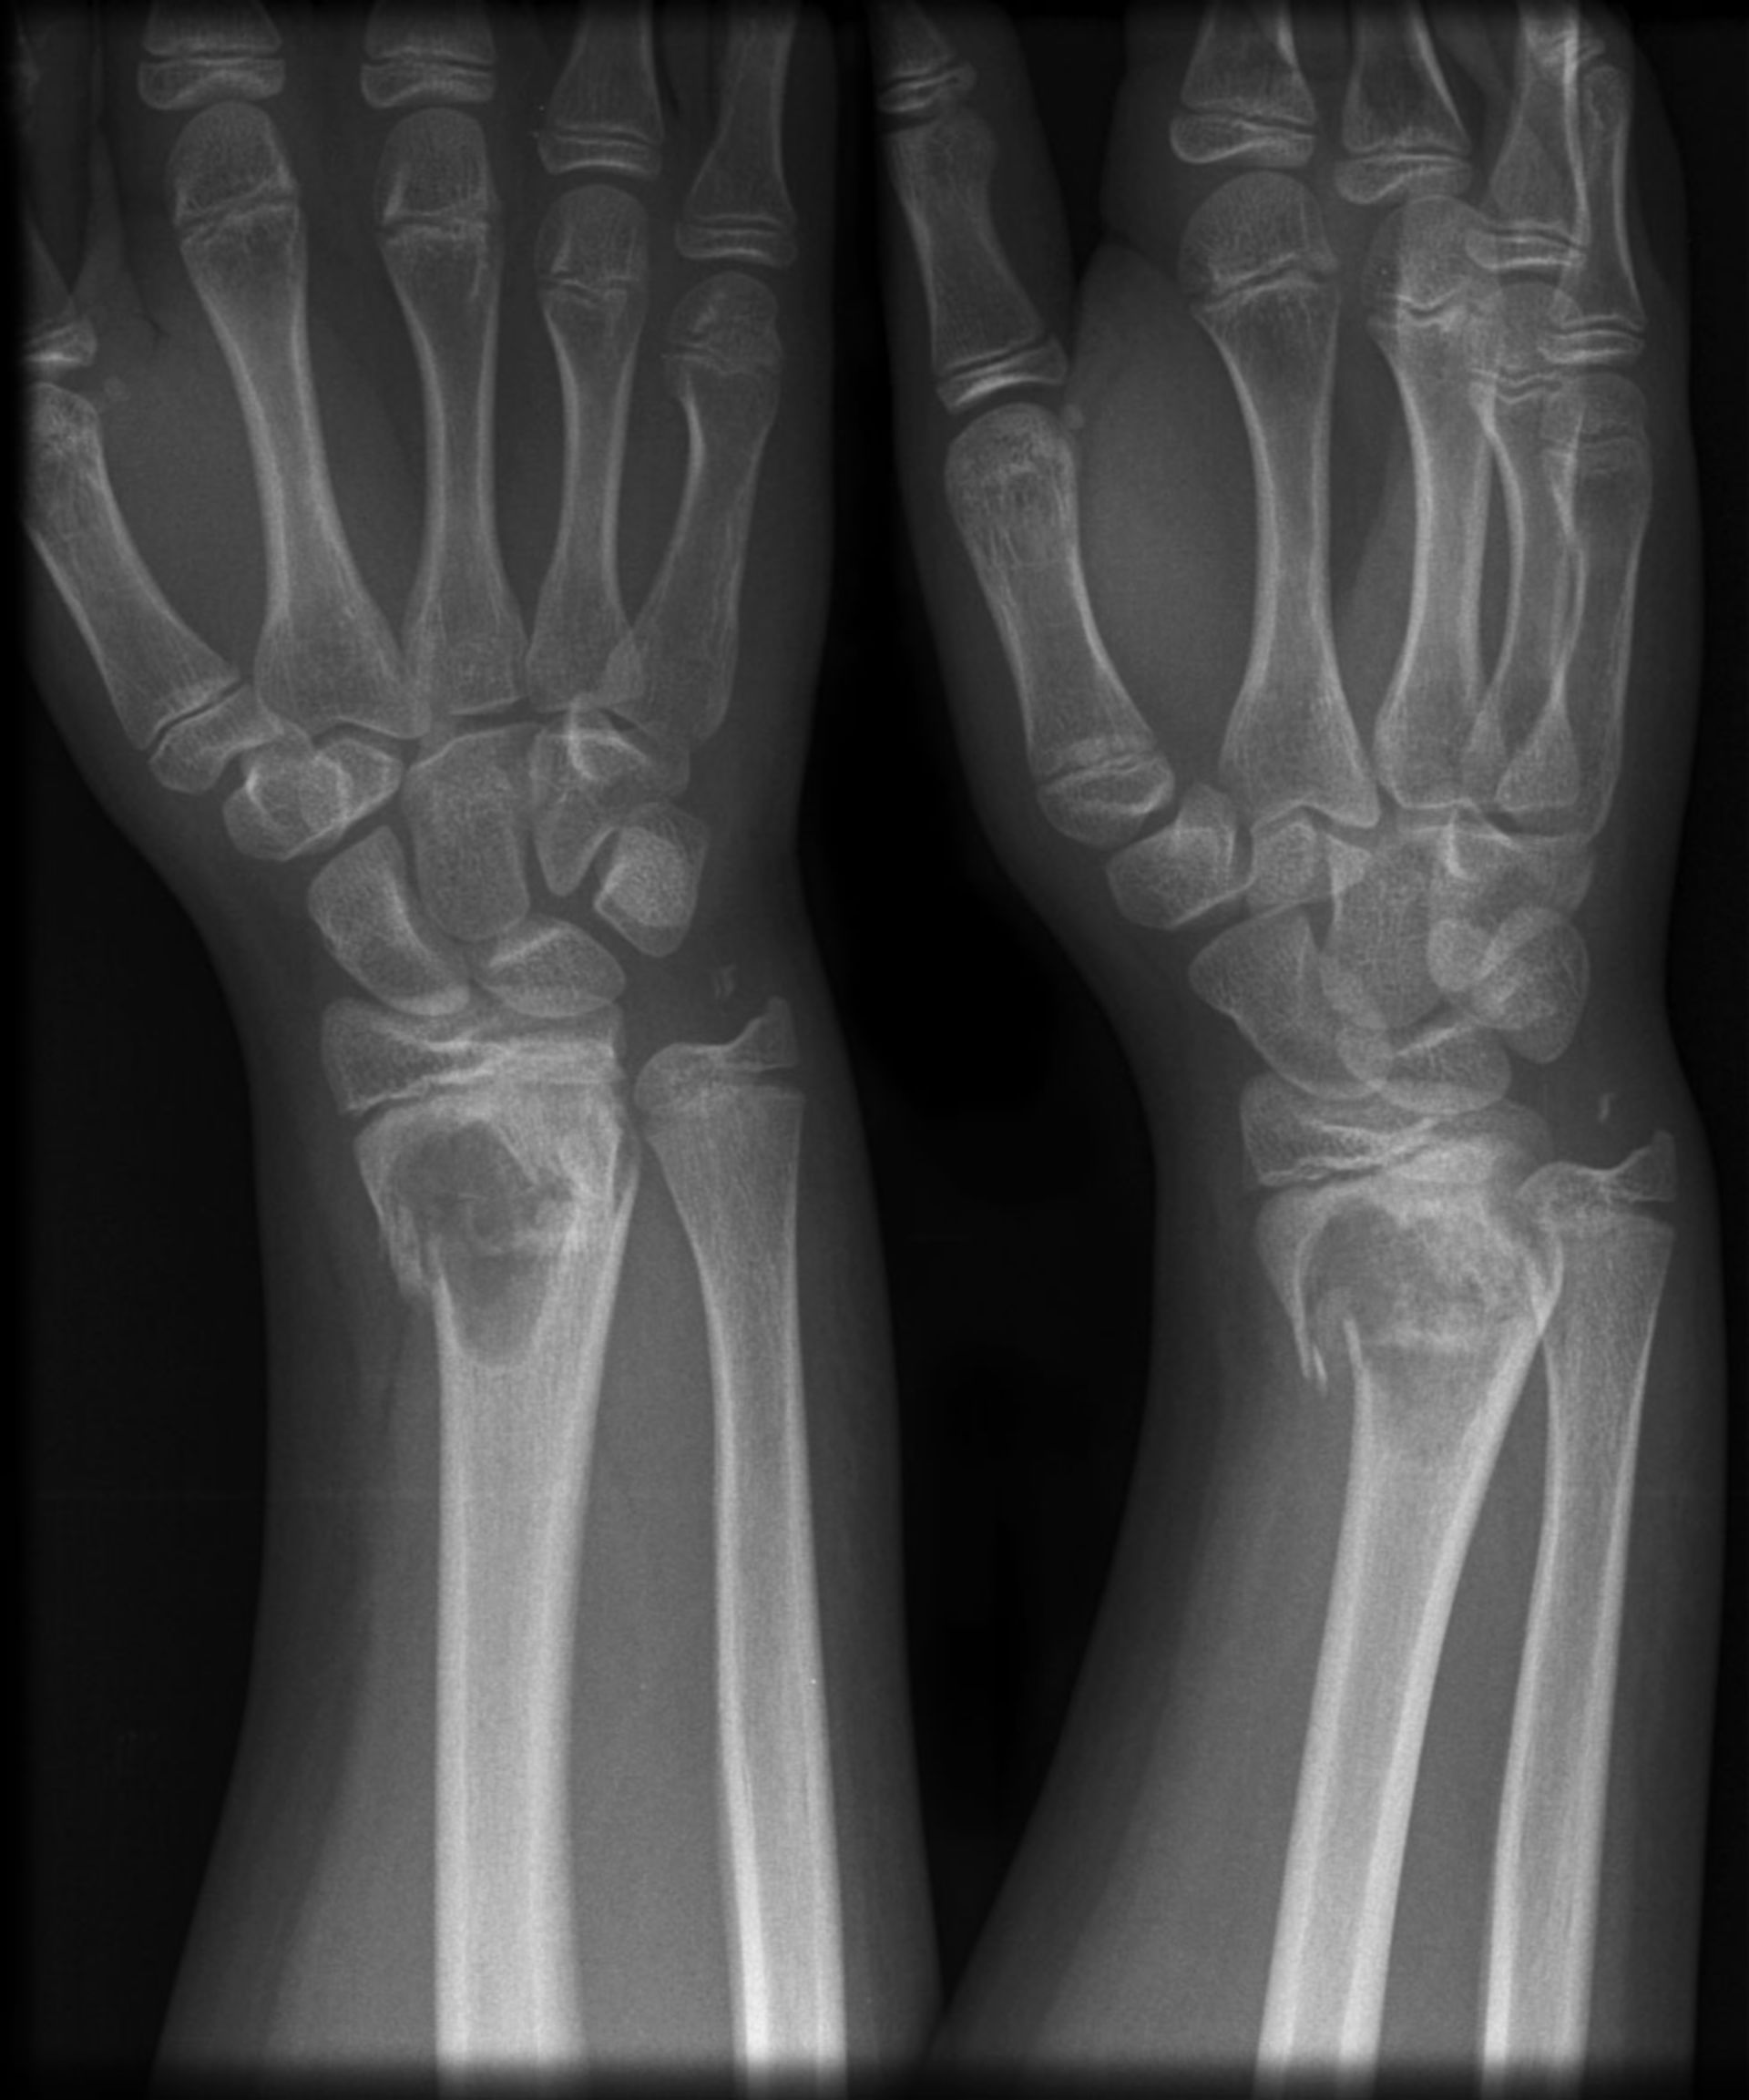 Metaphyseal pathological fracture